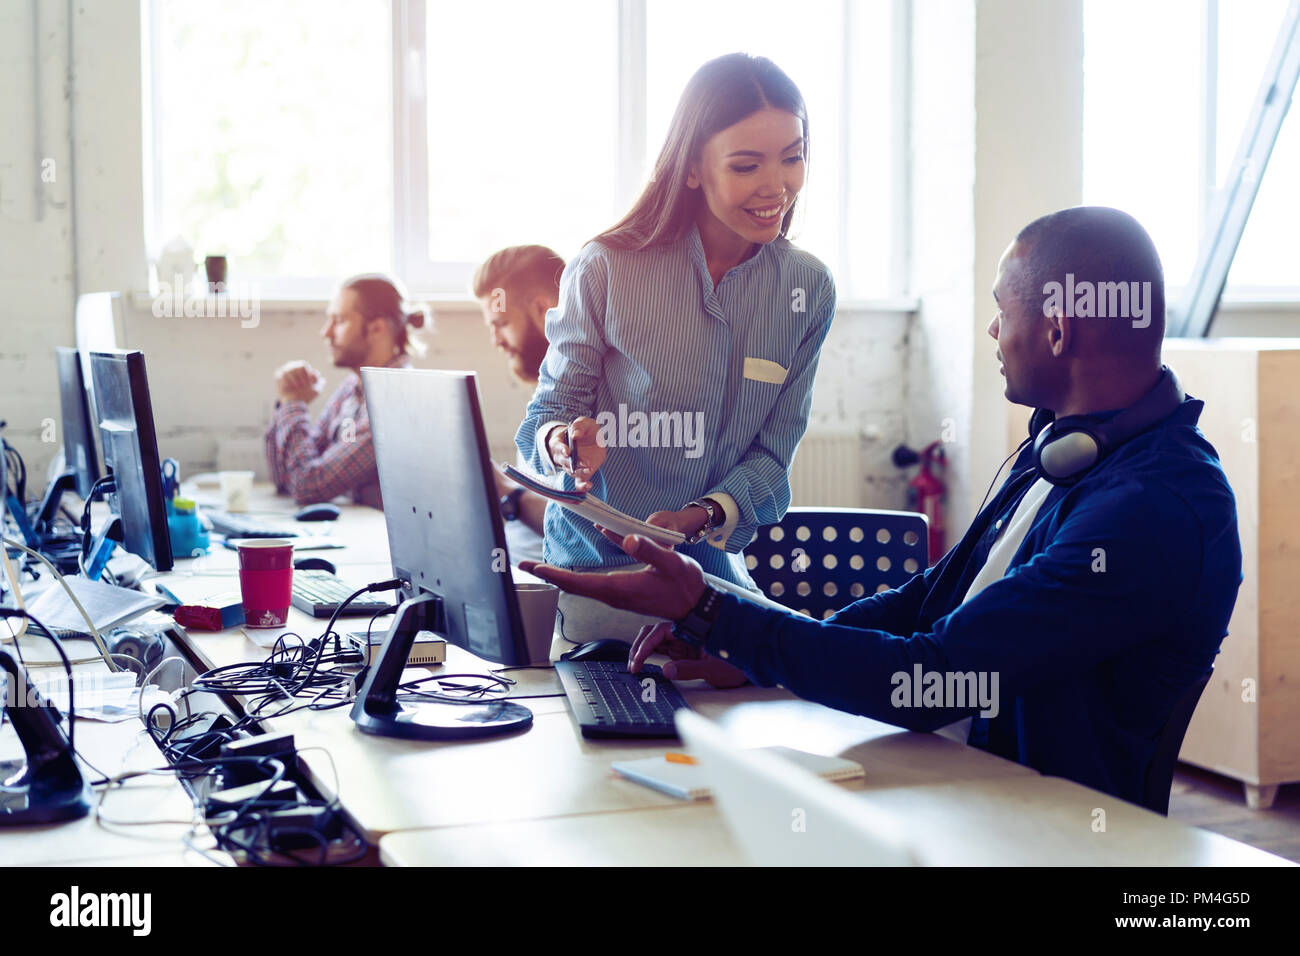 Busy working day. Top view of young modern people in smart casual wear discussing business while sitting in the creative office. - Stock Image